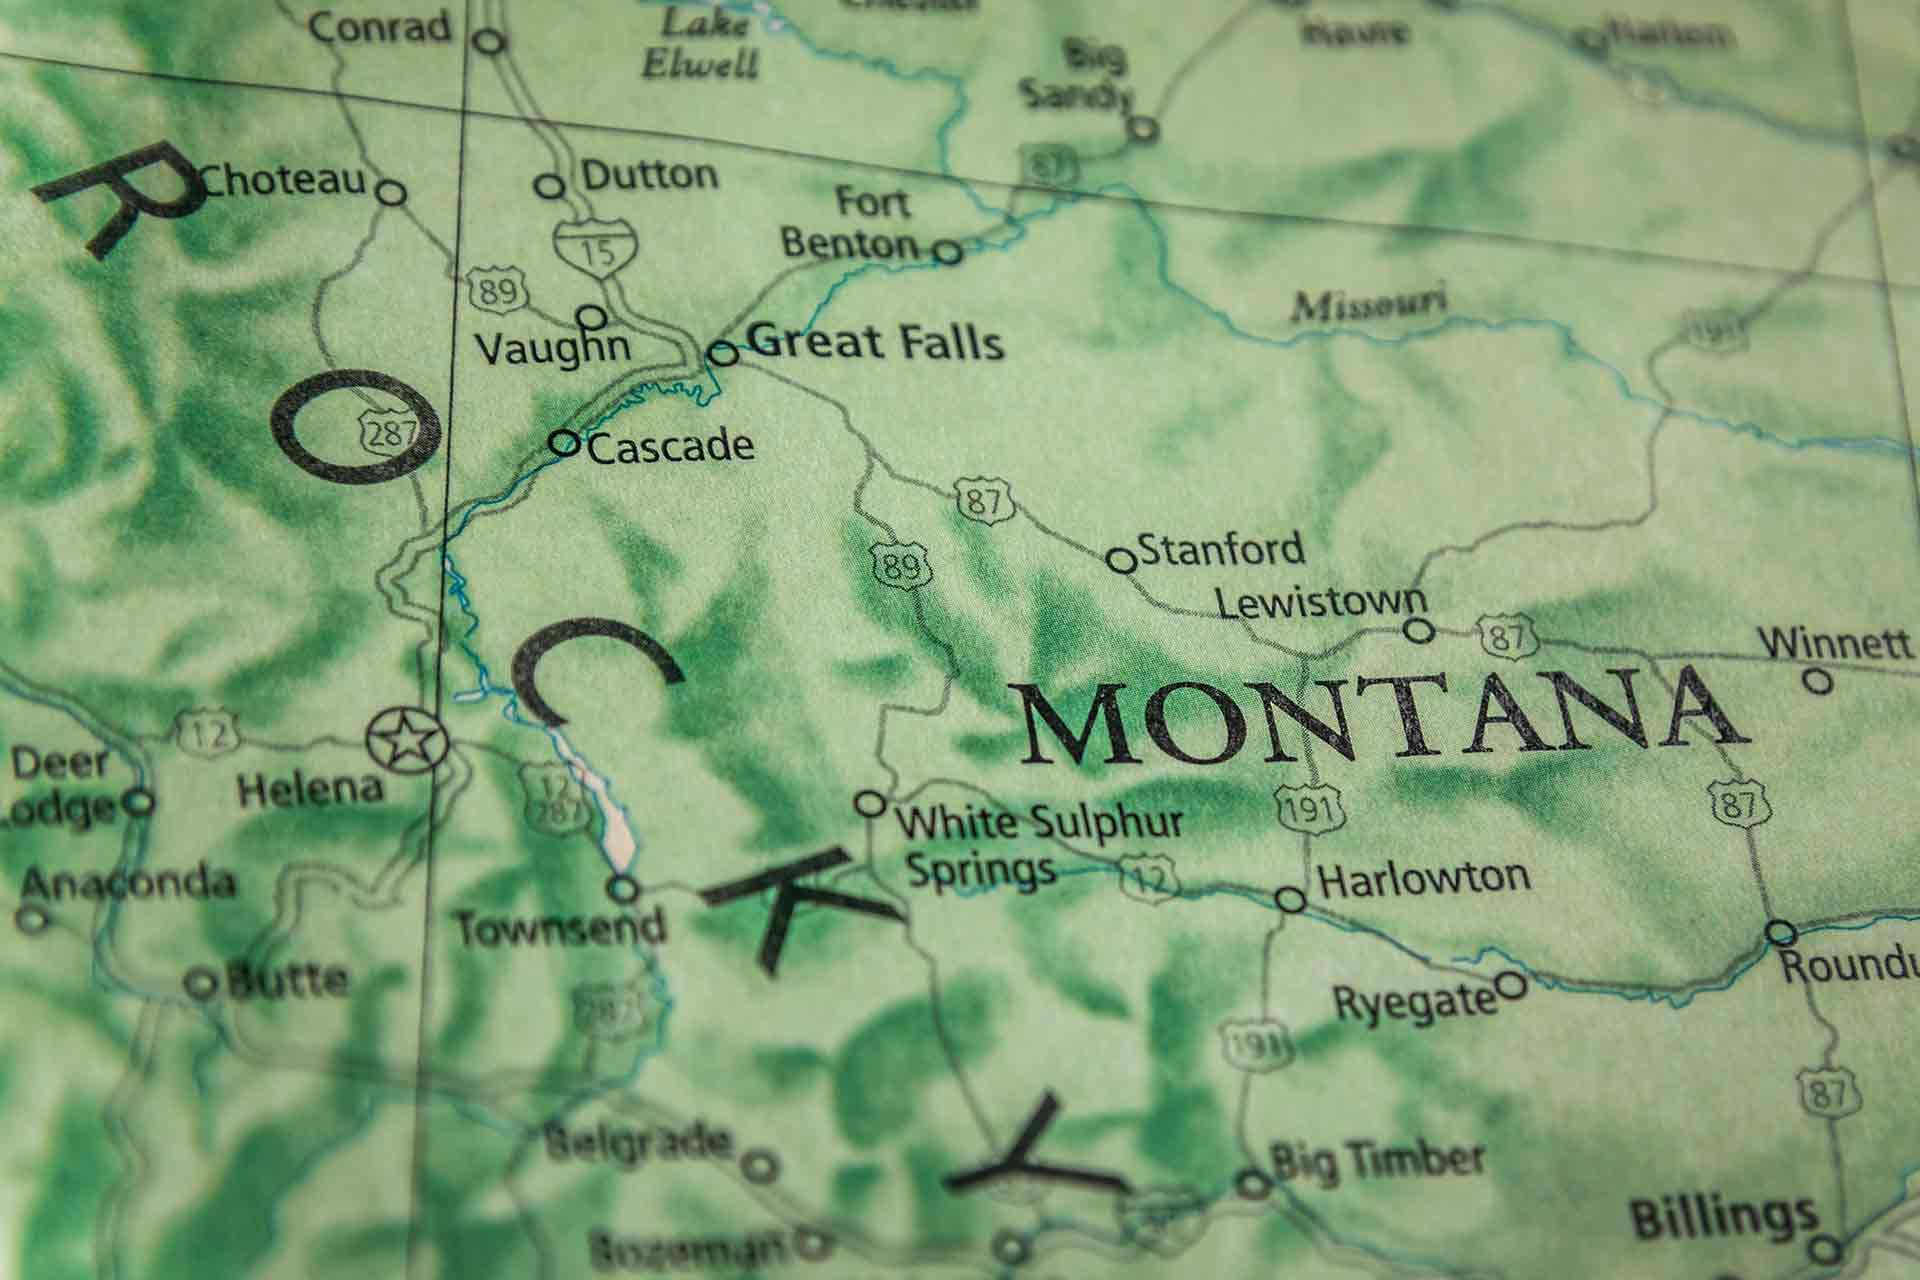 Old Historical City, County and State Maps of Montana on map of syracuse ny city limits, map of knoxville tn city limits, map of odessa tx city limits, map of charlotte nc city limits, map of richmond va city limits, map of houston tx city limits, map of lincoln ne city limits, map of bellingham wa city limits, map of san antonio tx city limits, map of jacksonville nc city limits, map of duluth mn city limits, map of spokane wa city limits, map of gainesville fl city limits, map of martinsburg wv city limits, map of morgantown wv city limits, map of montgomery al city limits, map of rochester mn city limits, map of toledo oh city limits, map of murfreesboro tn city limits, map of rapid city sd city limits,